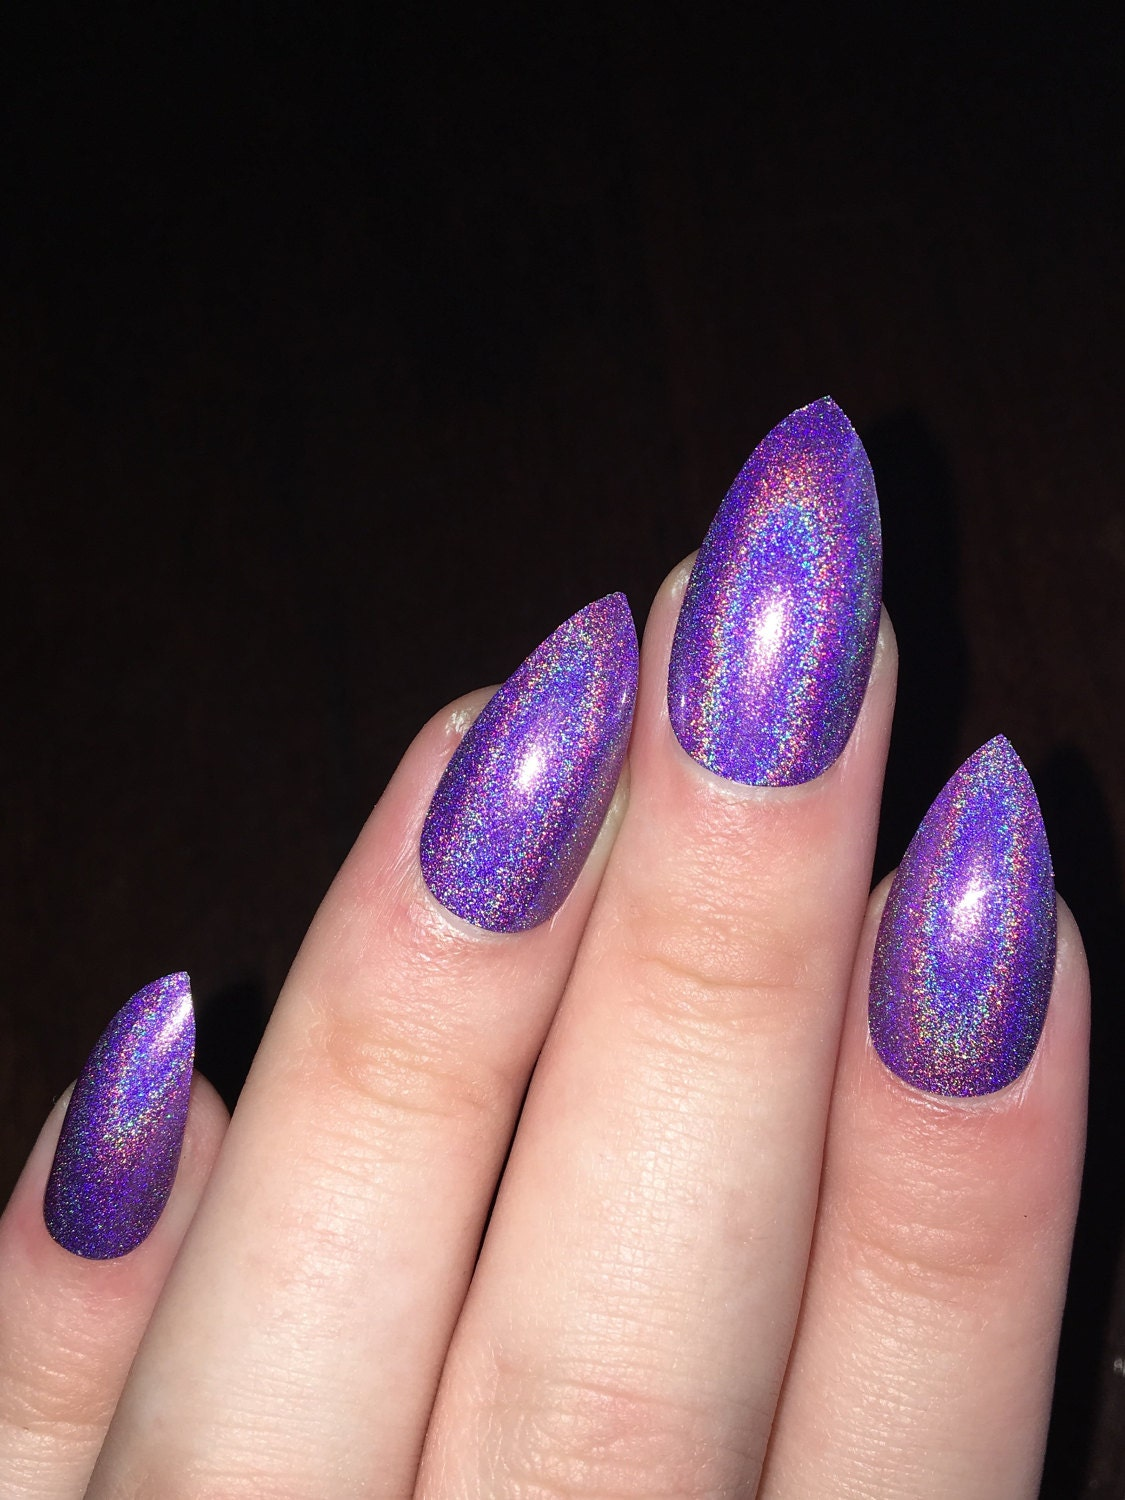 fake nails, press on nails, stiletto nails, holographic, holographic ...